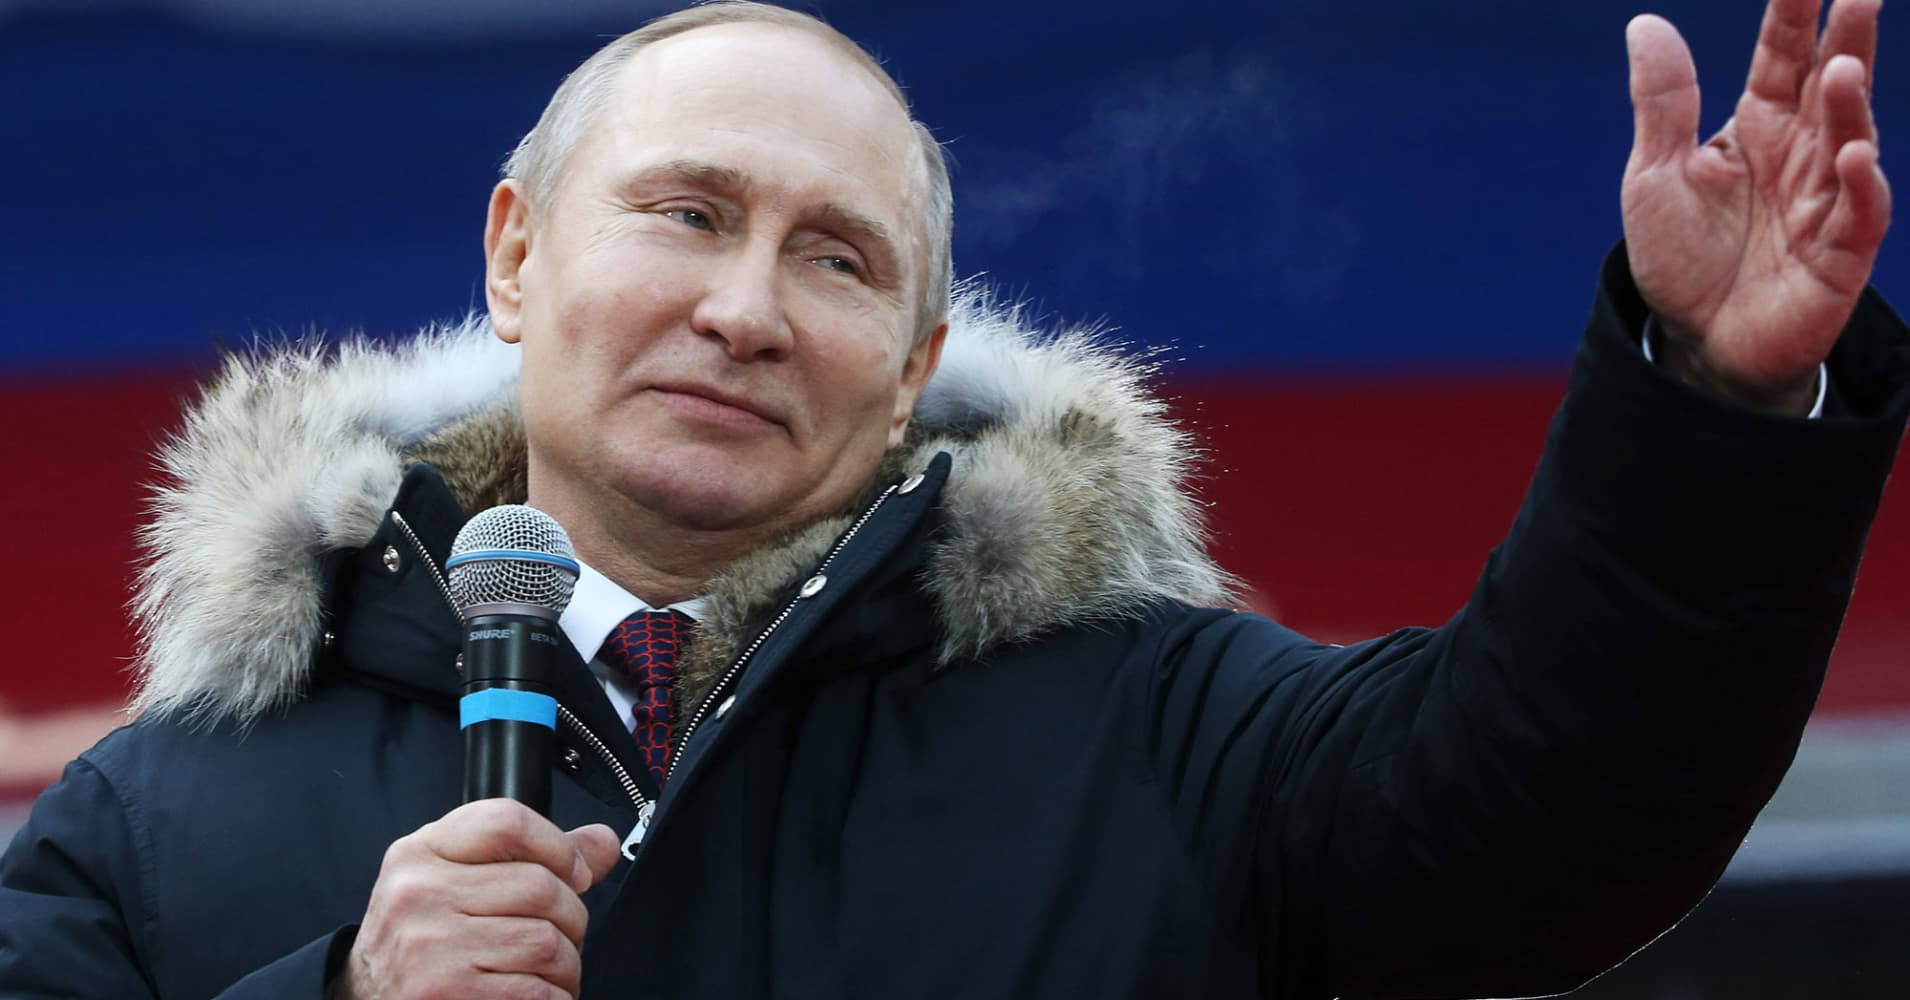 Putin is on track for a win as Russians head to polls, but it's causing fears of a low turnout